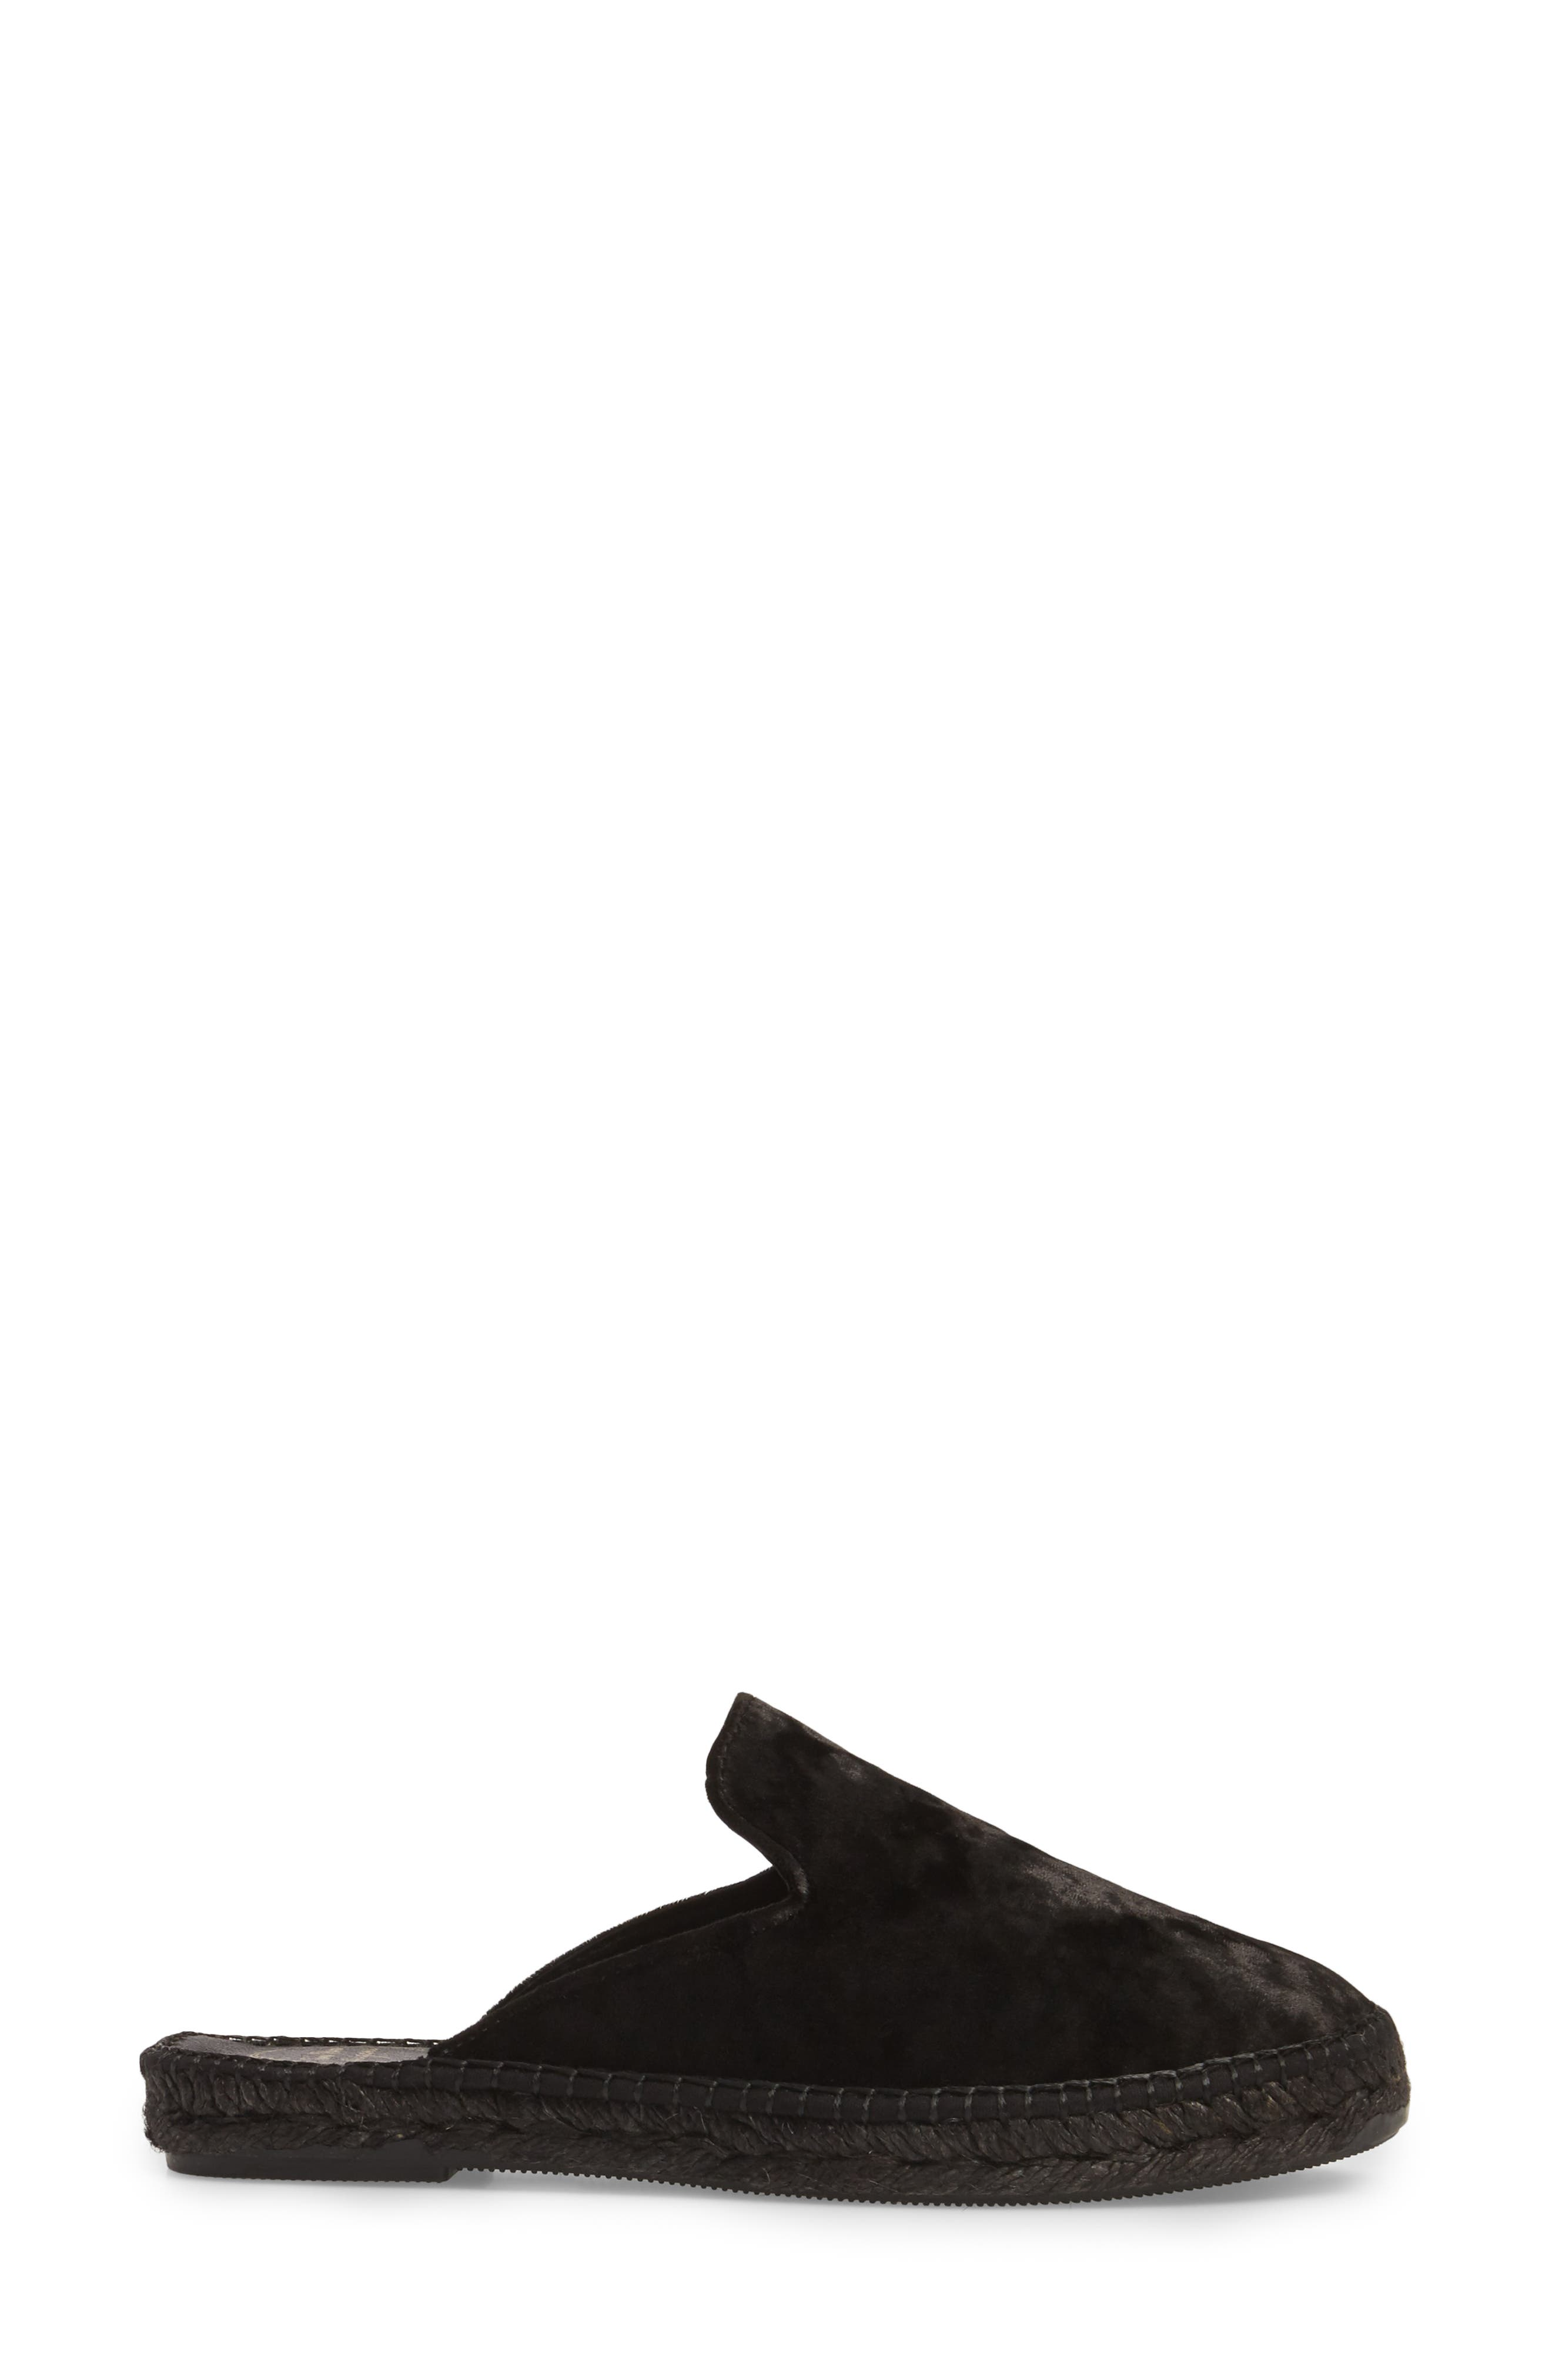 Alternate Image 3  - Toni Pons Malmo Espadrille Slipper Mule (Women)